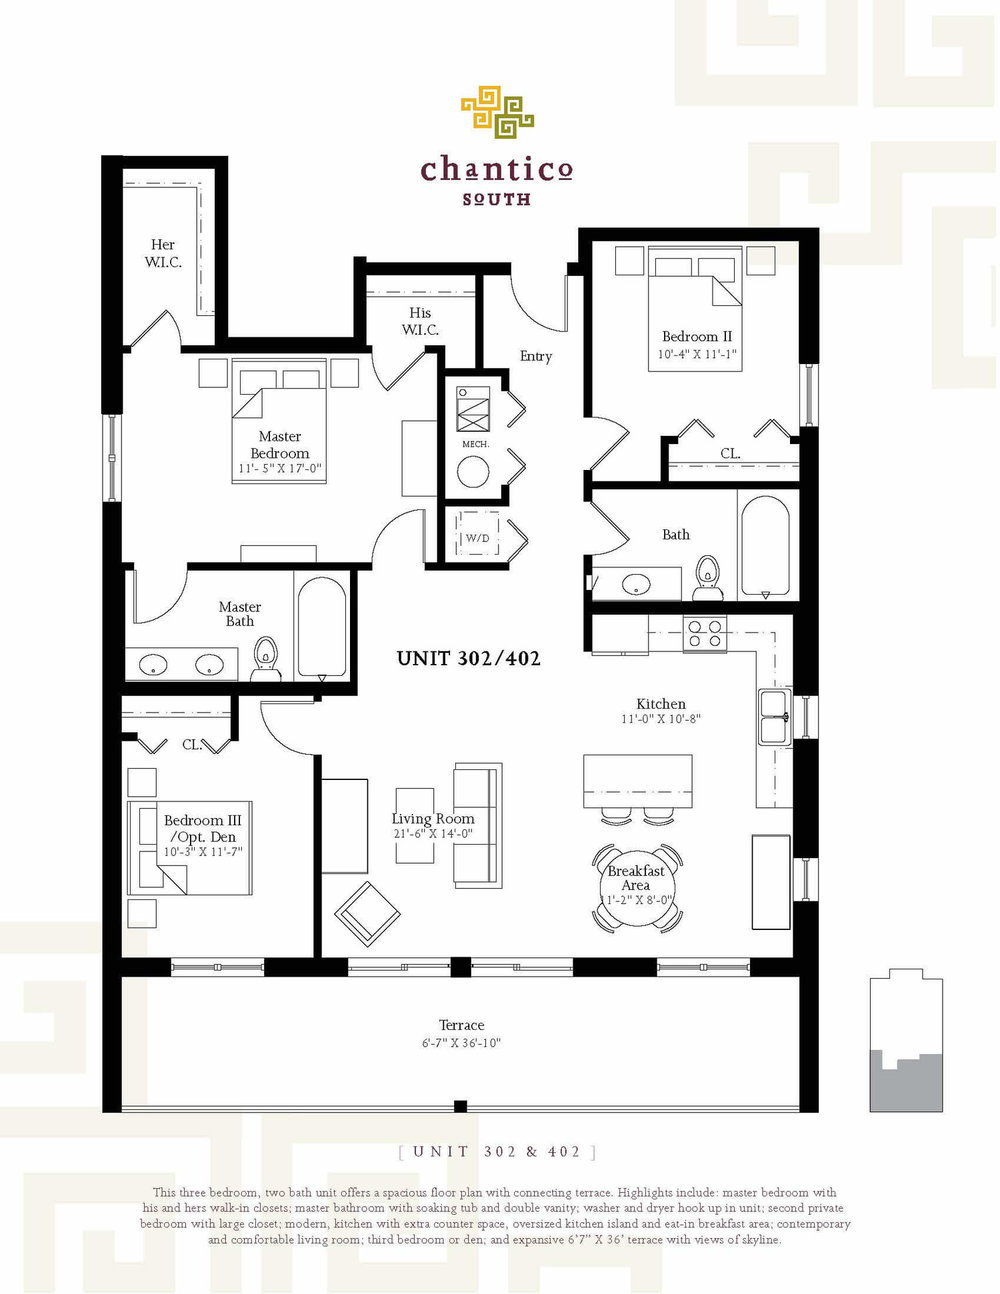 Chicago-apartment-302-402-Chantico-South-Floorplans.jpg